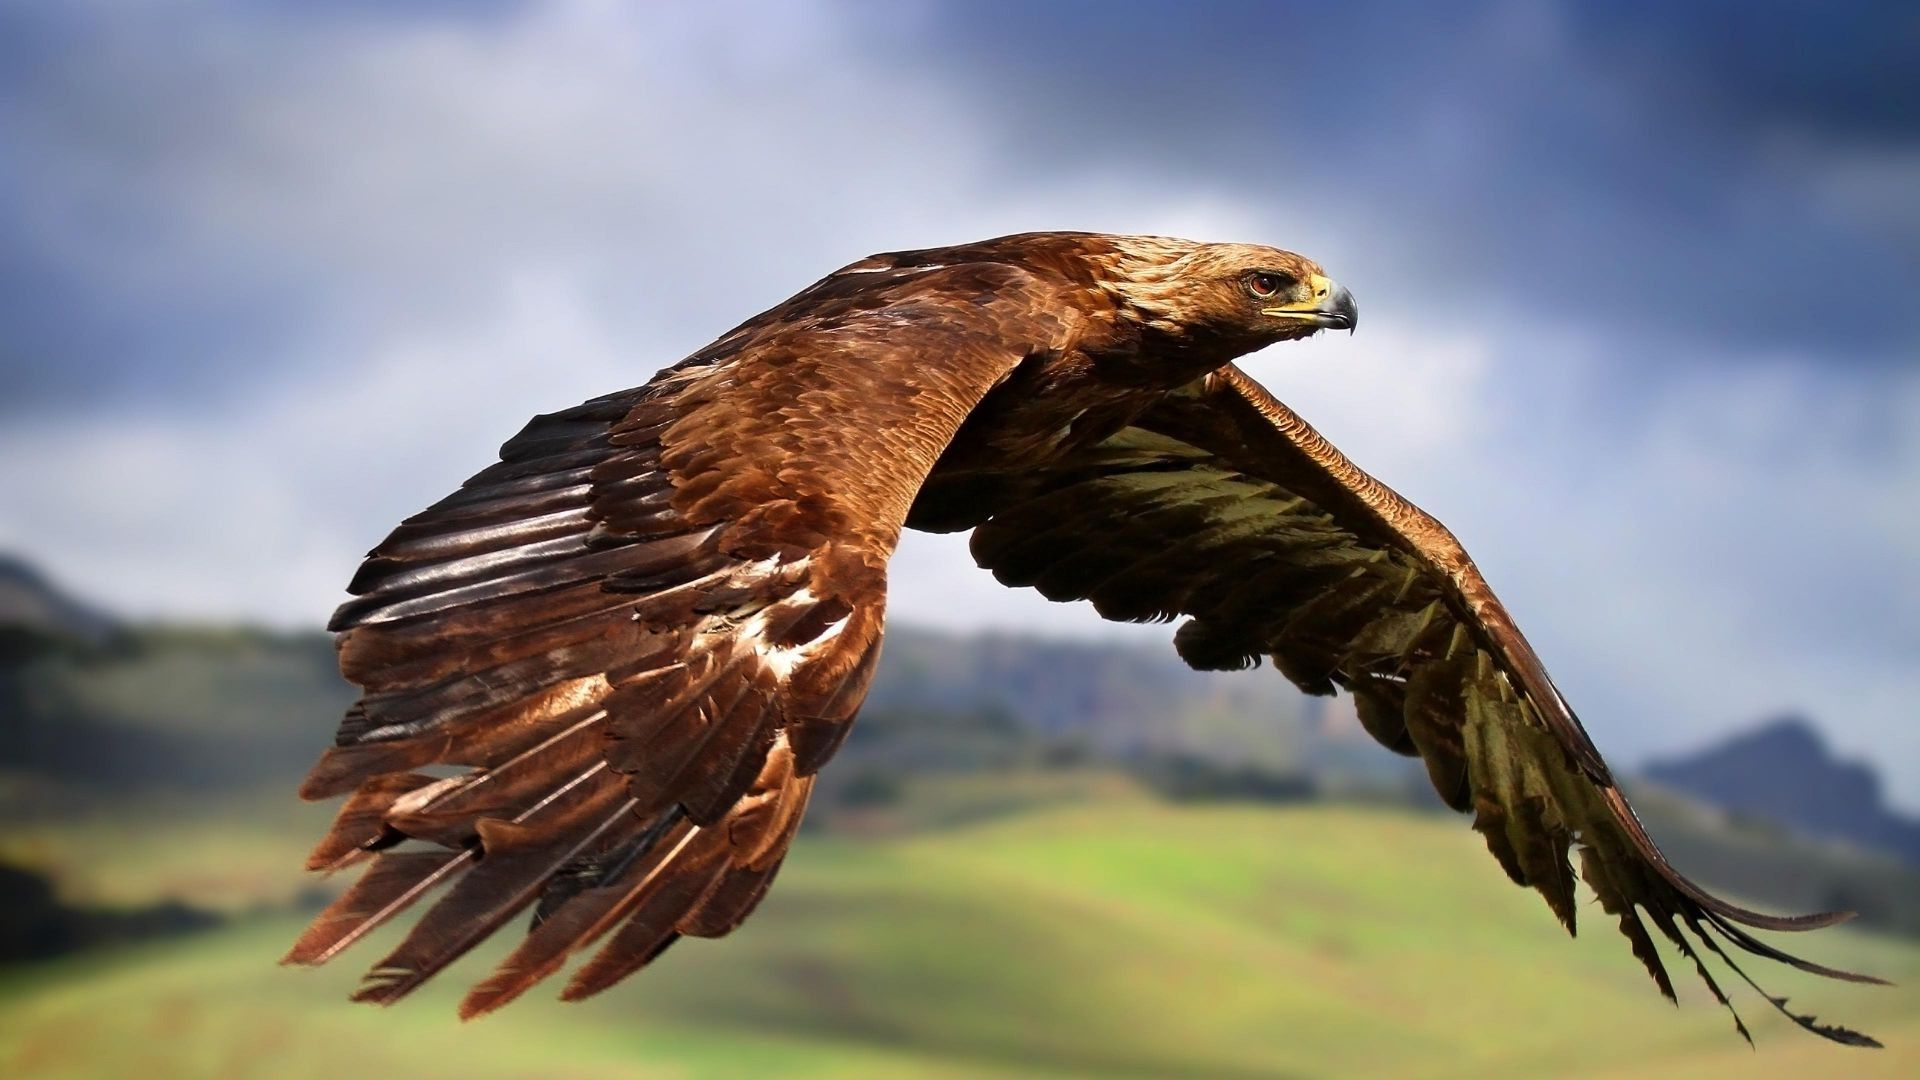 Eagle Wallpapers High Quality Download Free